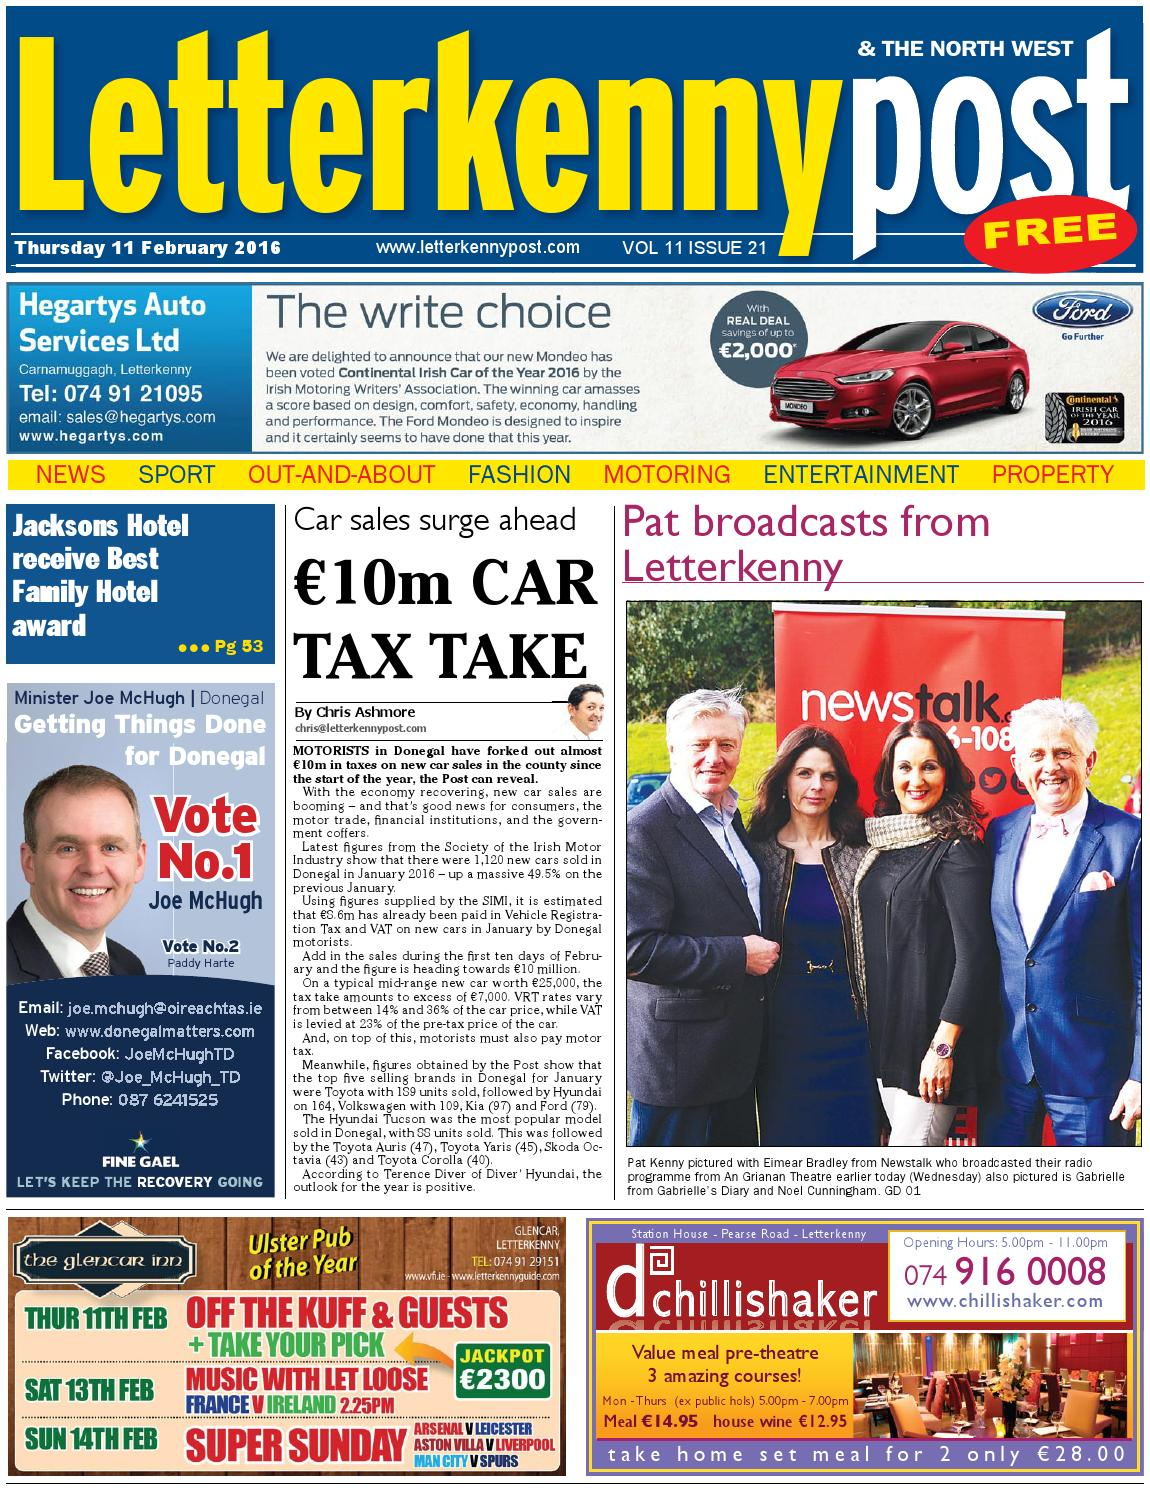 Letterkenny Post 11 02 16 By River Media Newspapers Issuu